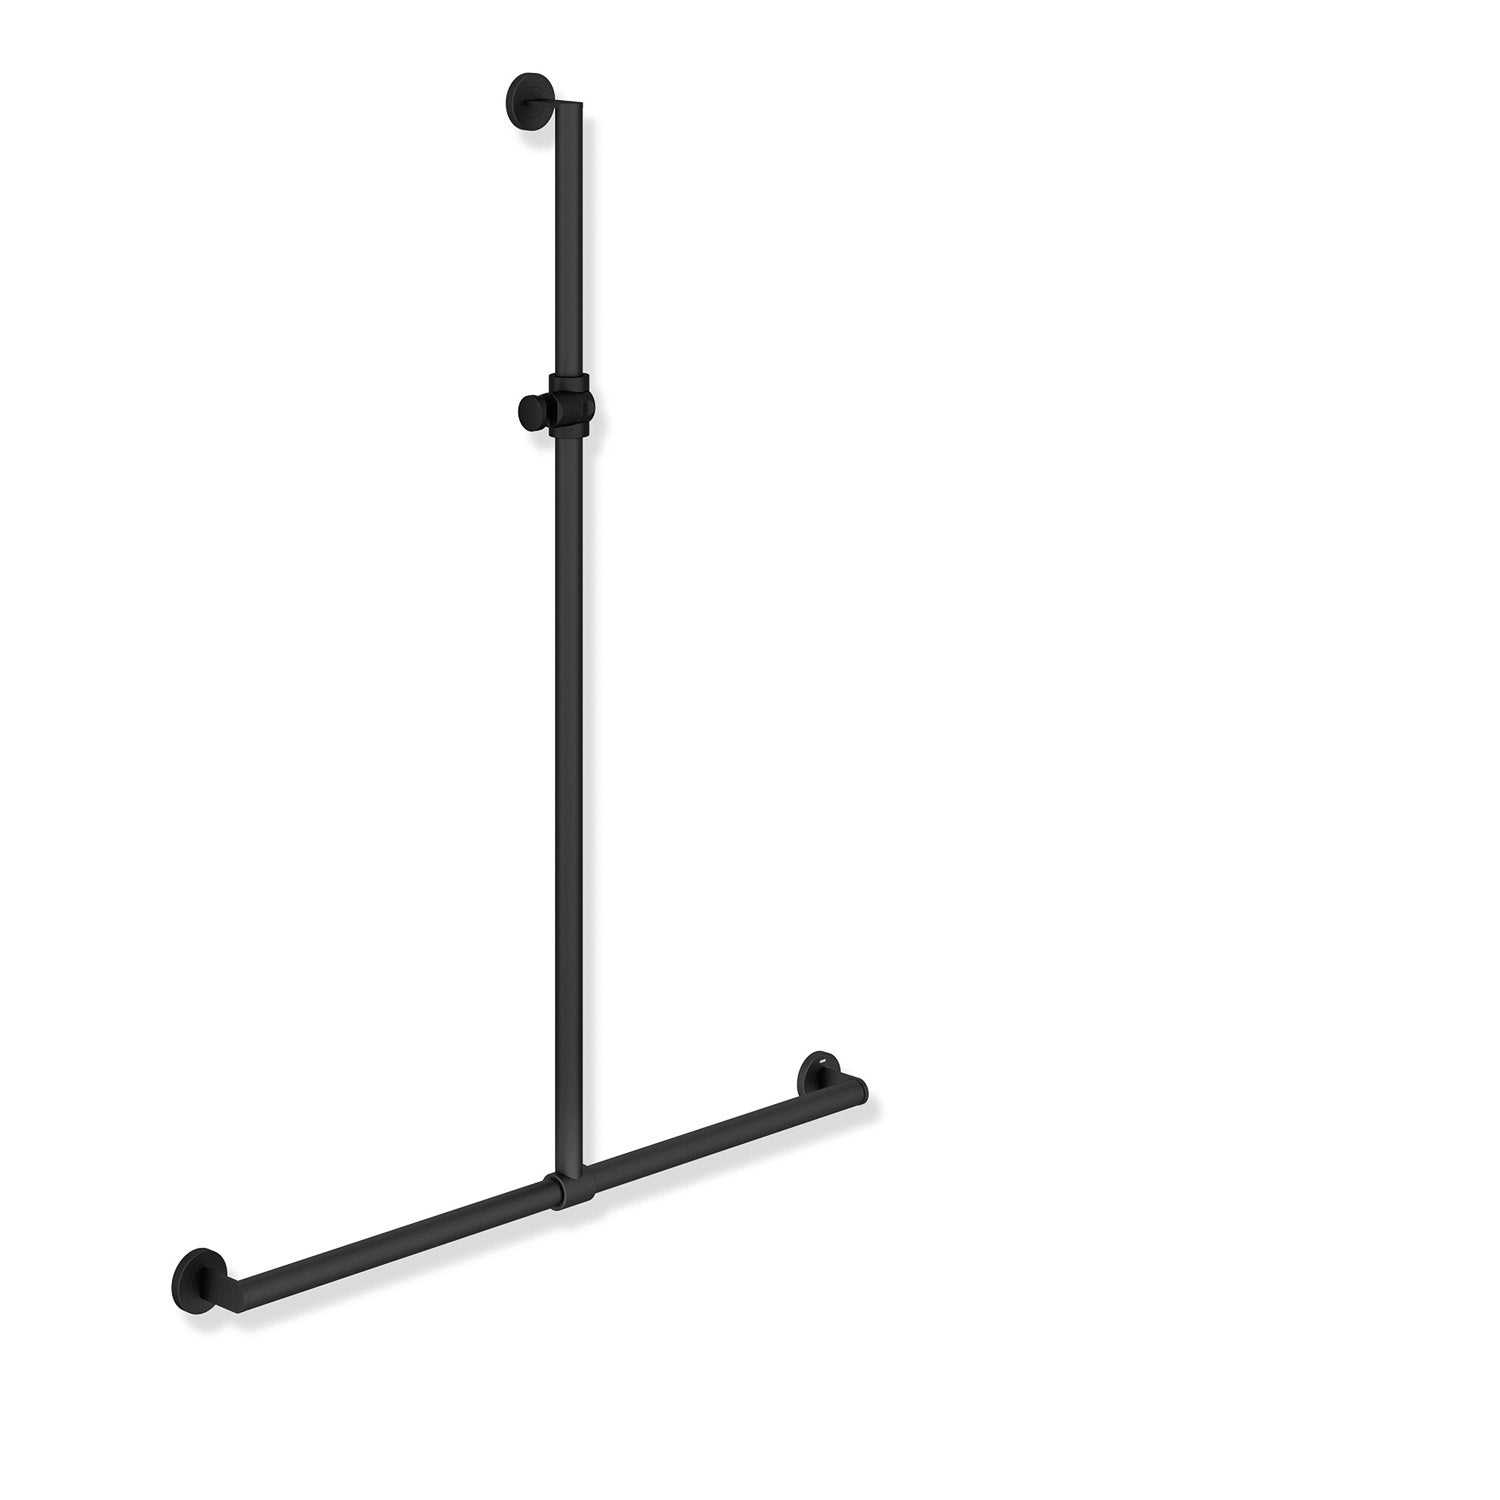 1250x1185mm Freestyle Supportive T Shaped Shower Rail with a matt black finish on a white background